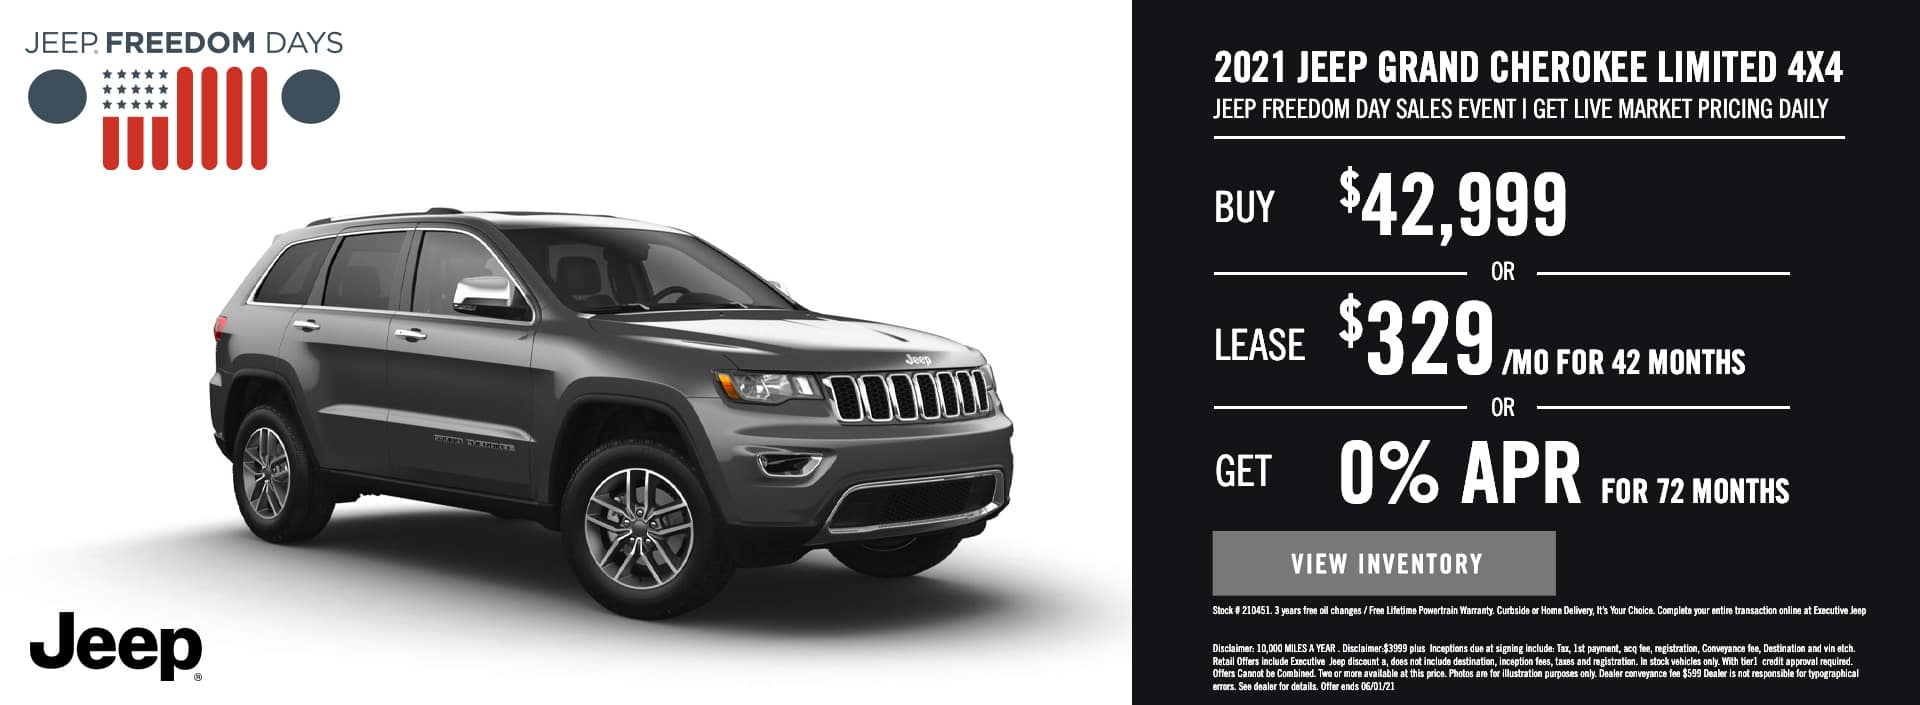 EAG_Jeep_2021 Jeep Grand Cherokee Limited 4×4